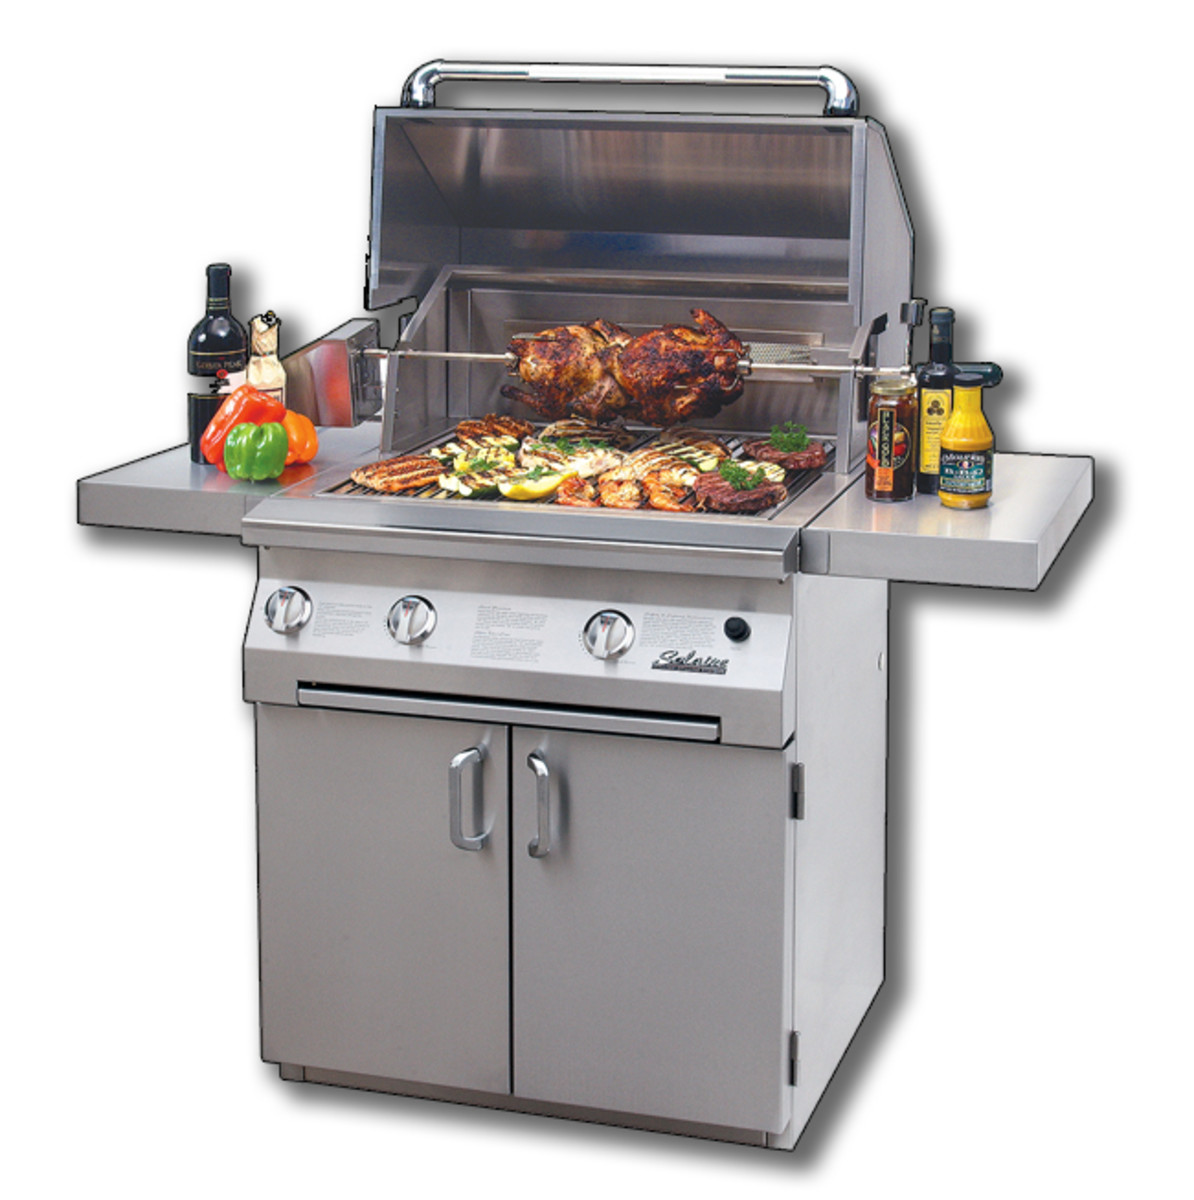 This 30 inch Infrared grill by Solaire Grilling Systems can be converted to a hybrid that is part convection and part infrared.